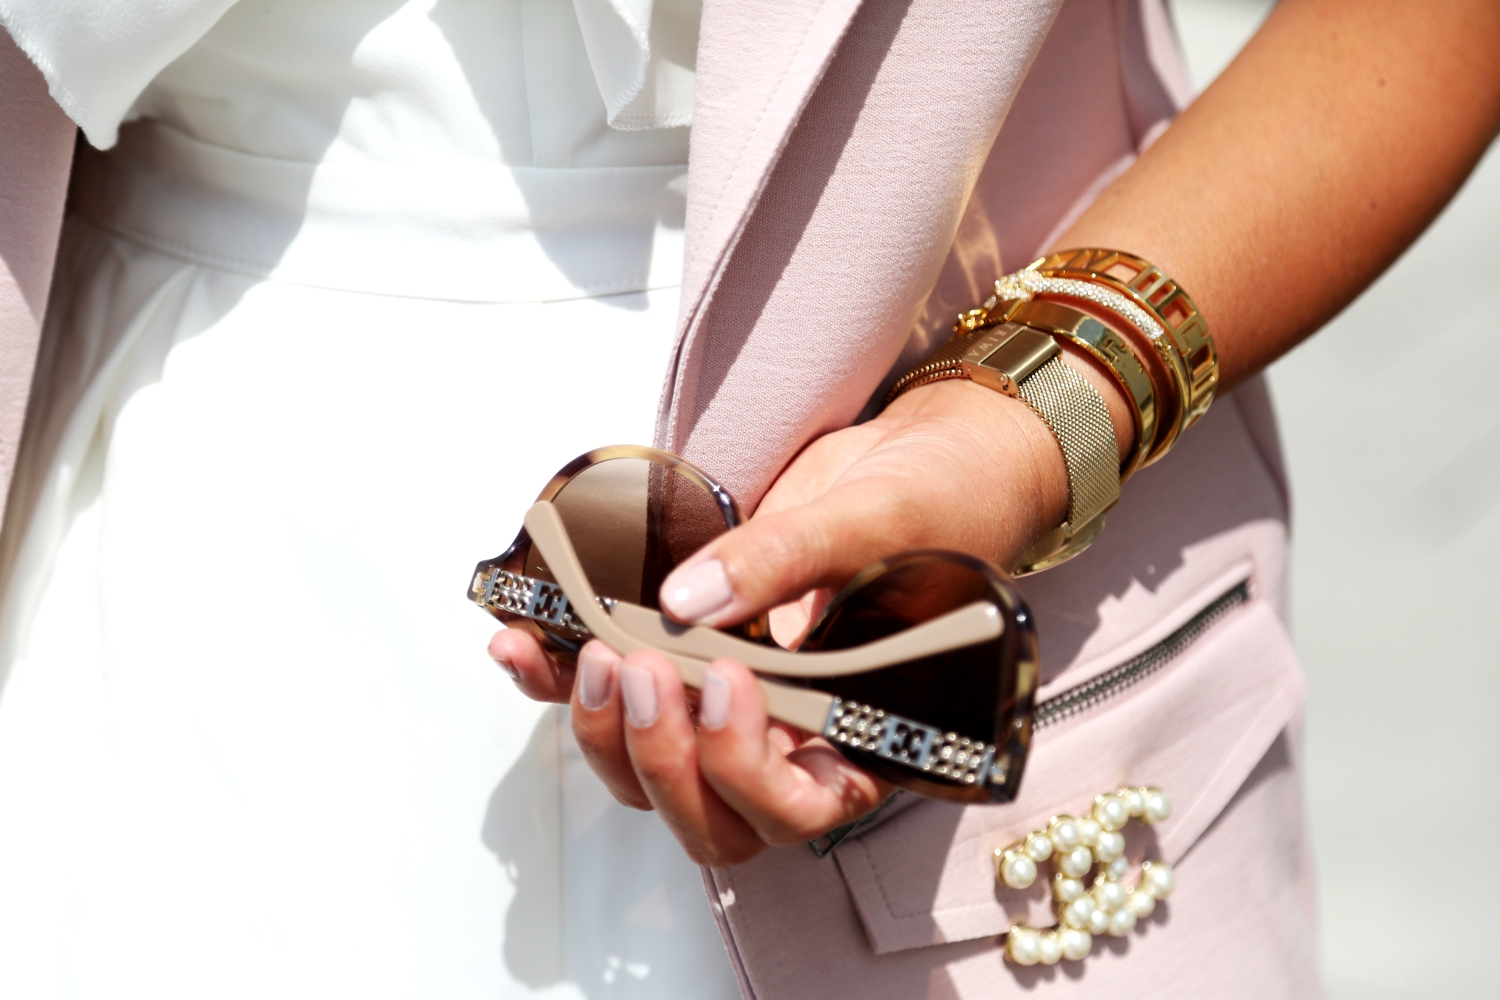 outfit-details-chanel-brooch-escada-sunglasses-armcandy